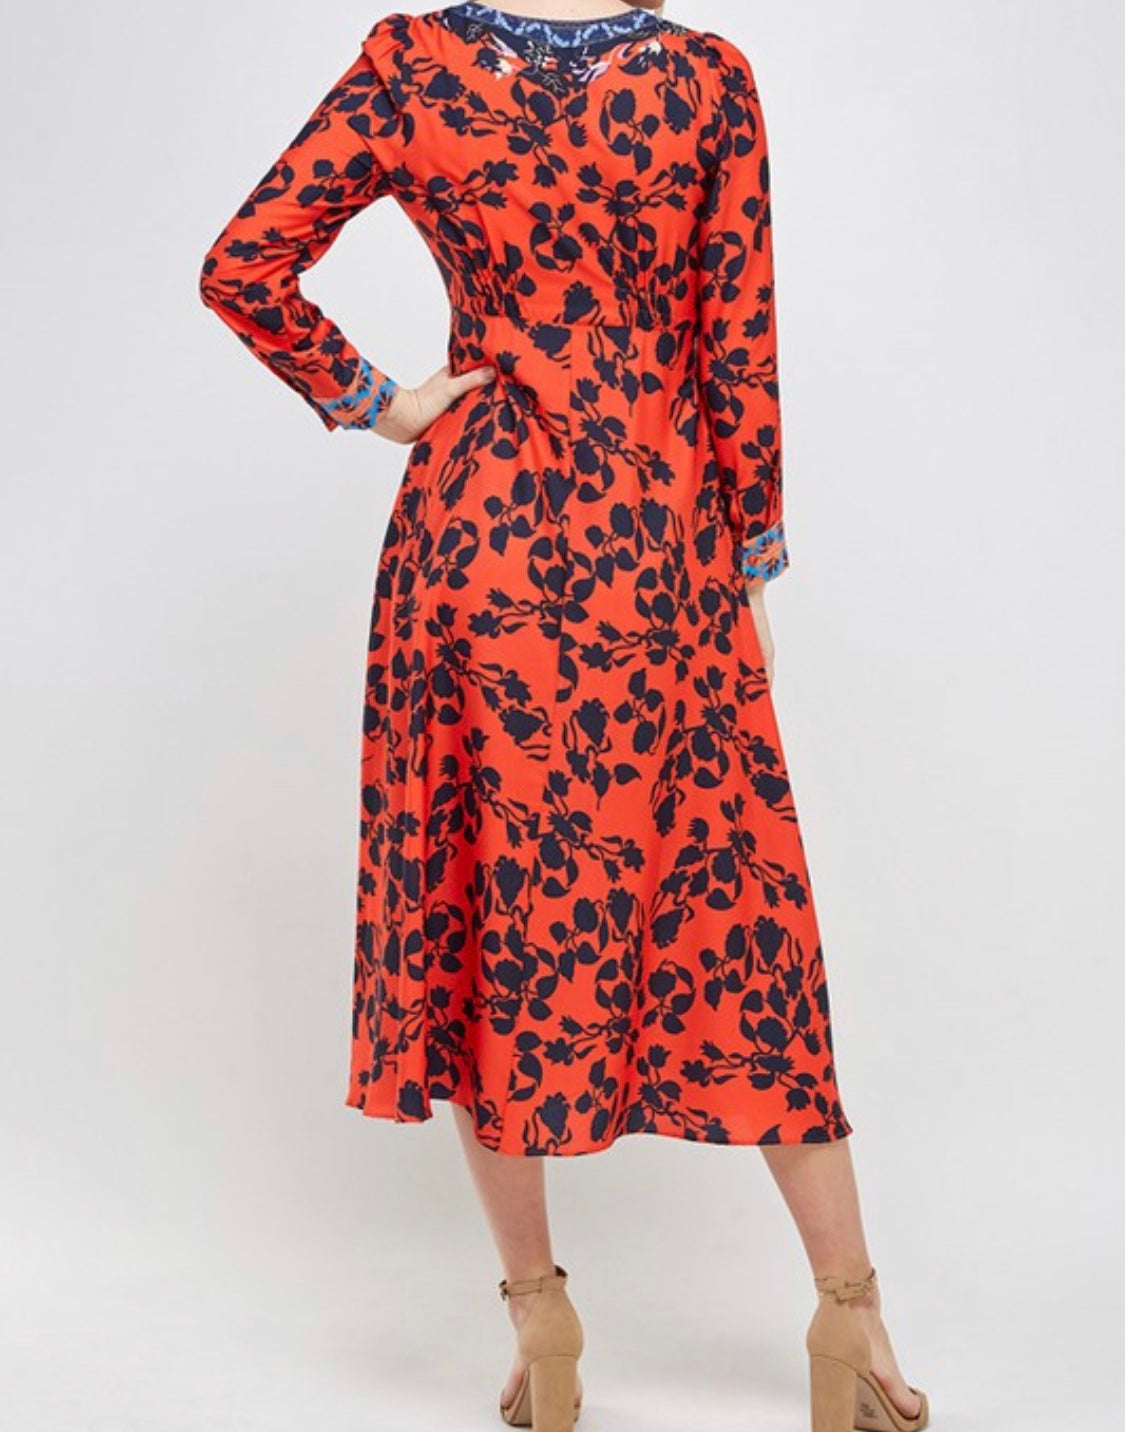 Rachel Long Sleeve Dress